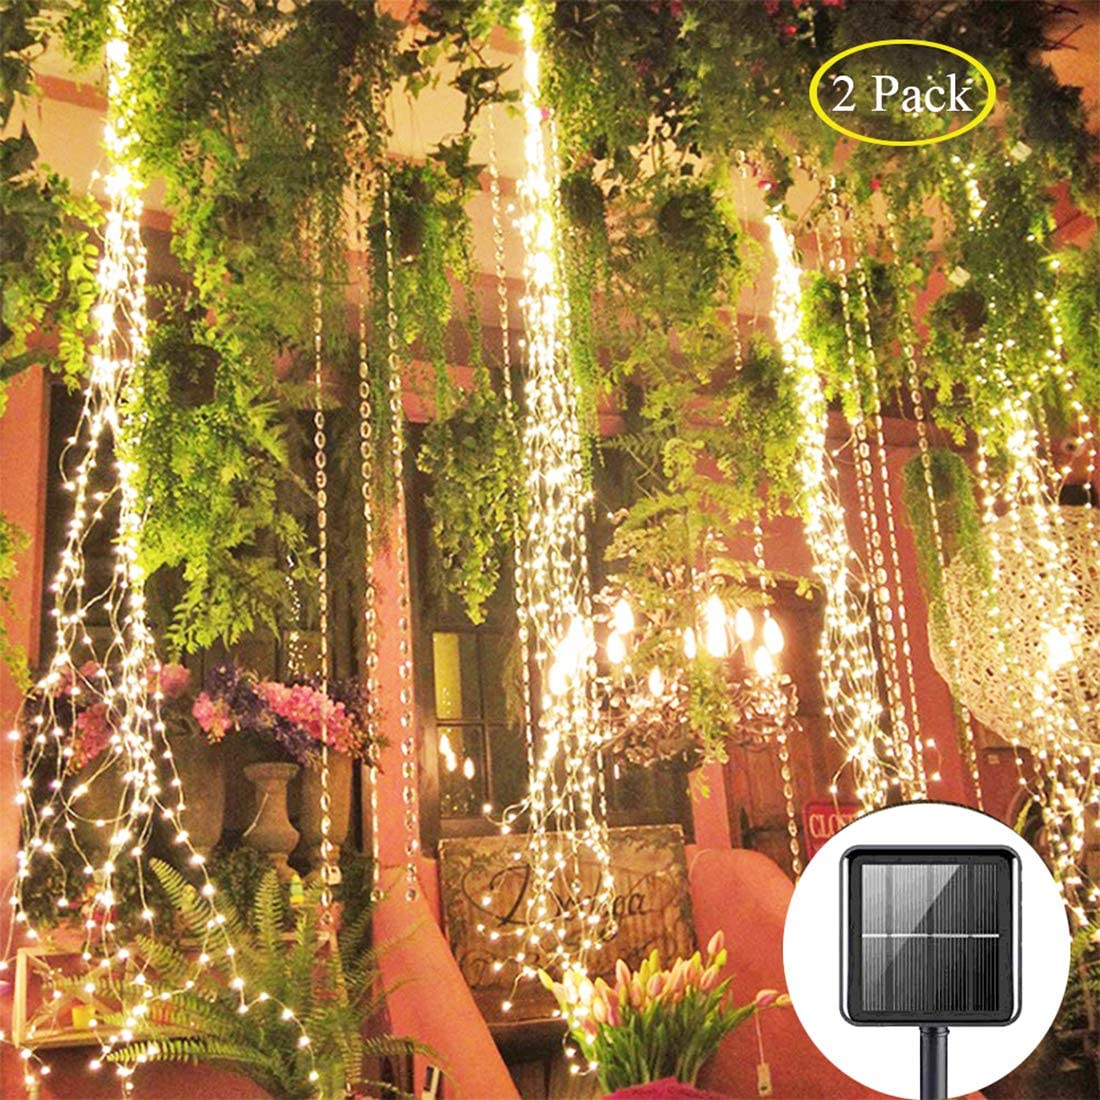 PXB 2 Pack 220 LED Firefly Bunch Lights, 8 Flashing Modes Waterproof Copper Wire Waterfall Lights, Fairy Lights for Vine Watering Can Christmas Bedroom Indoor Outdoor Decor Lights Solar Warm White